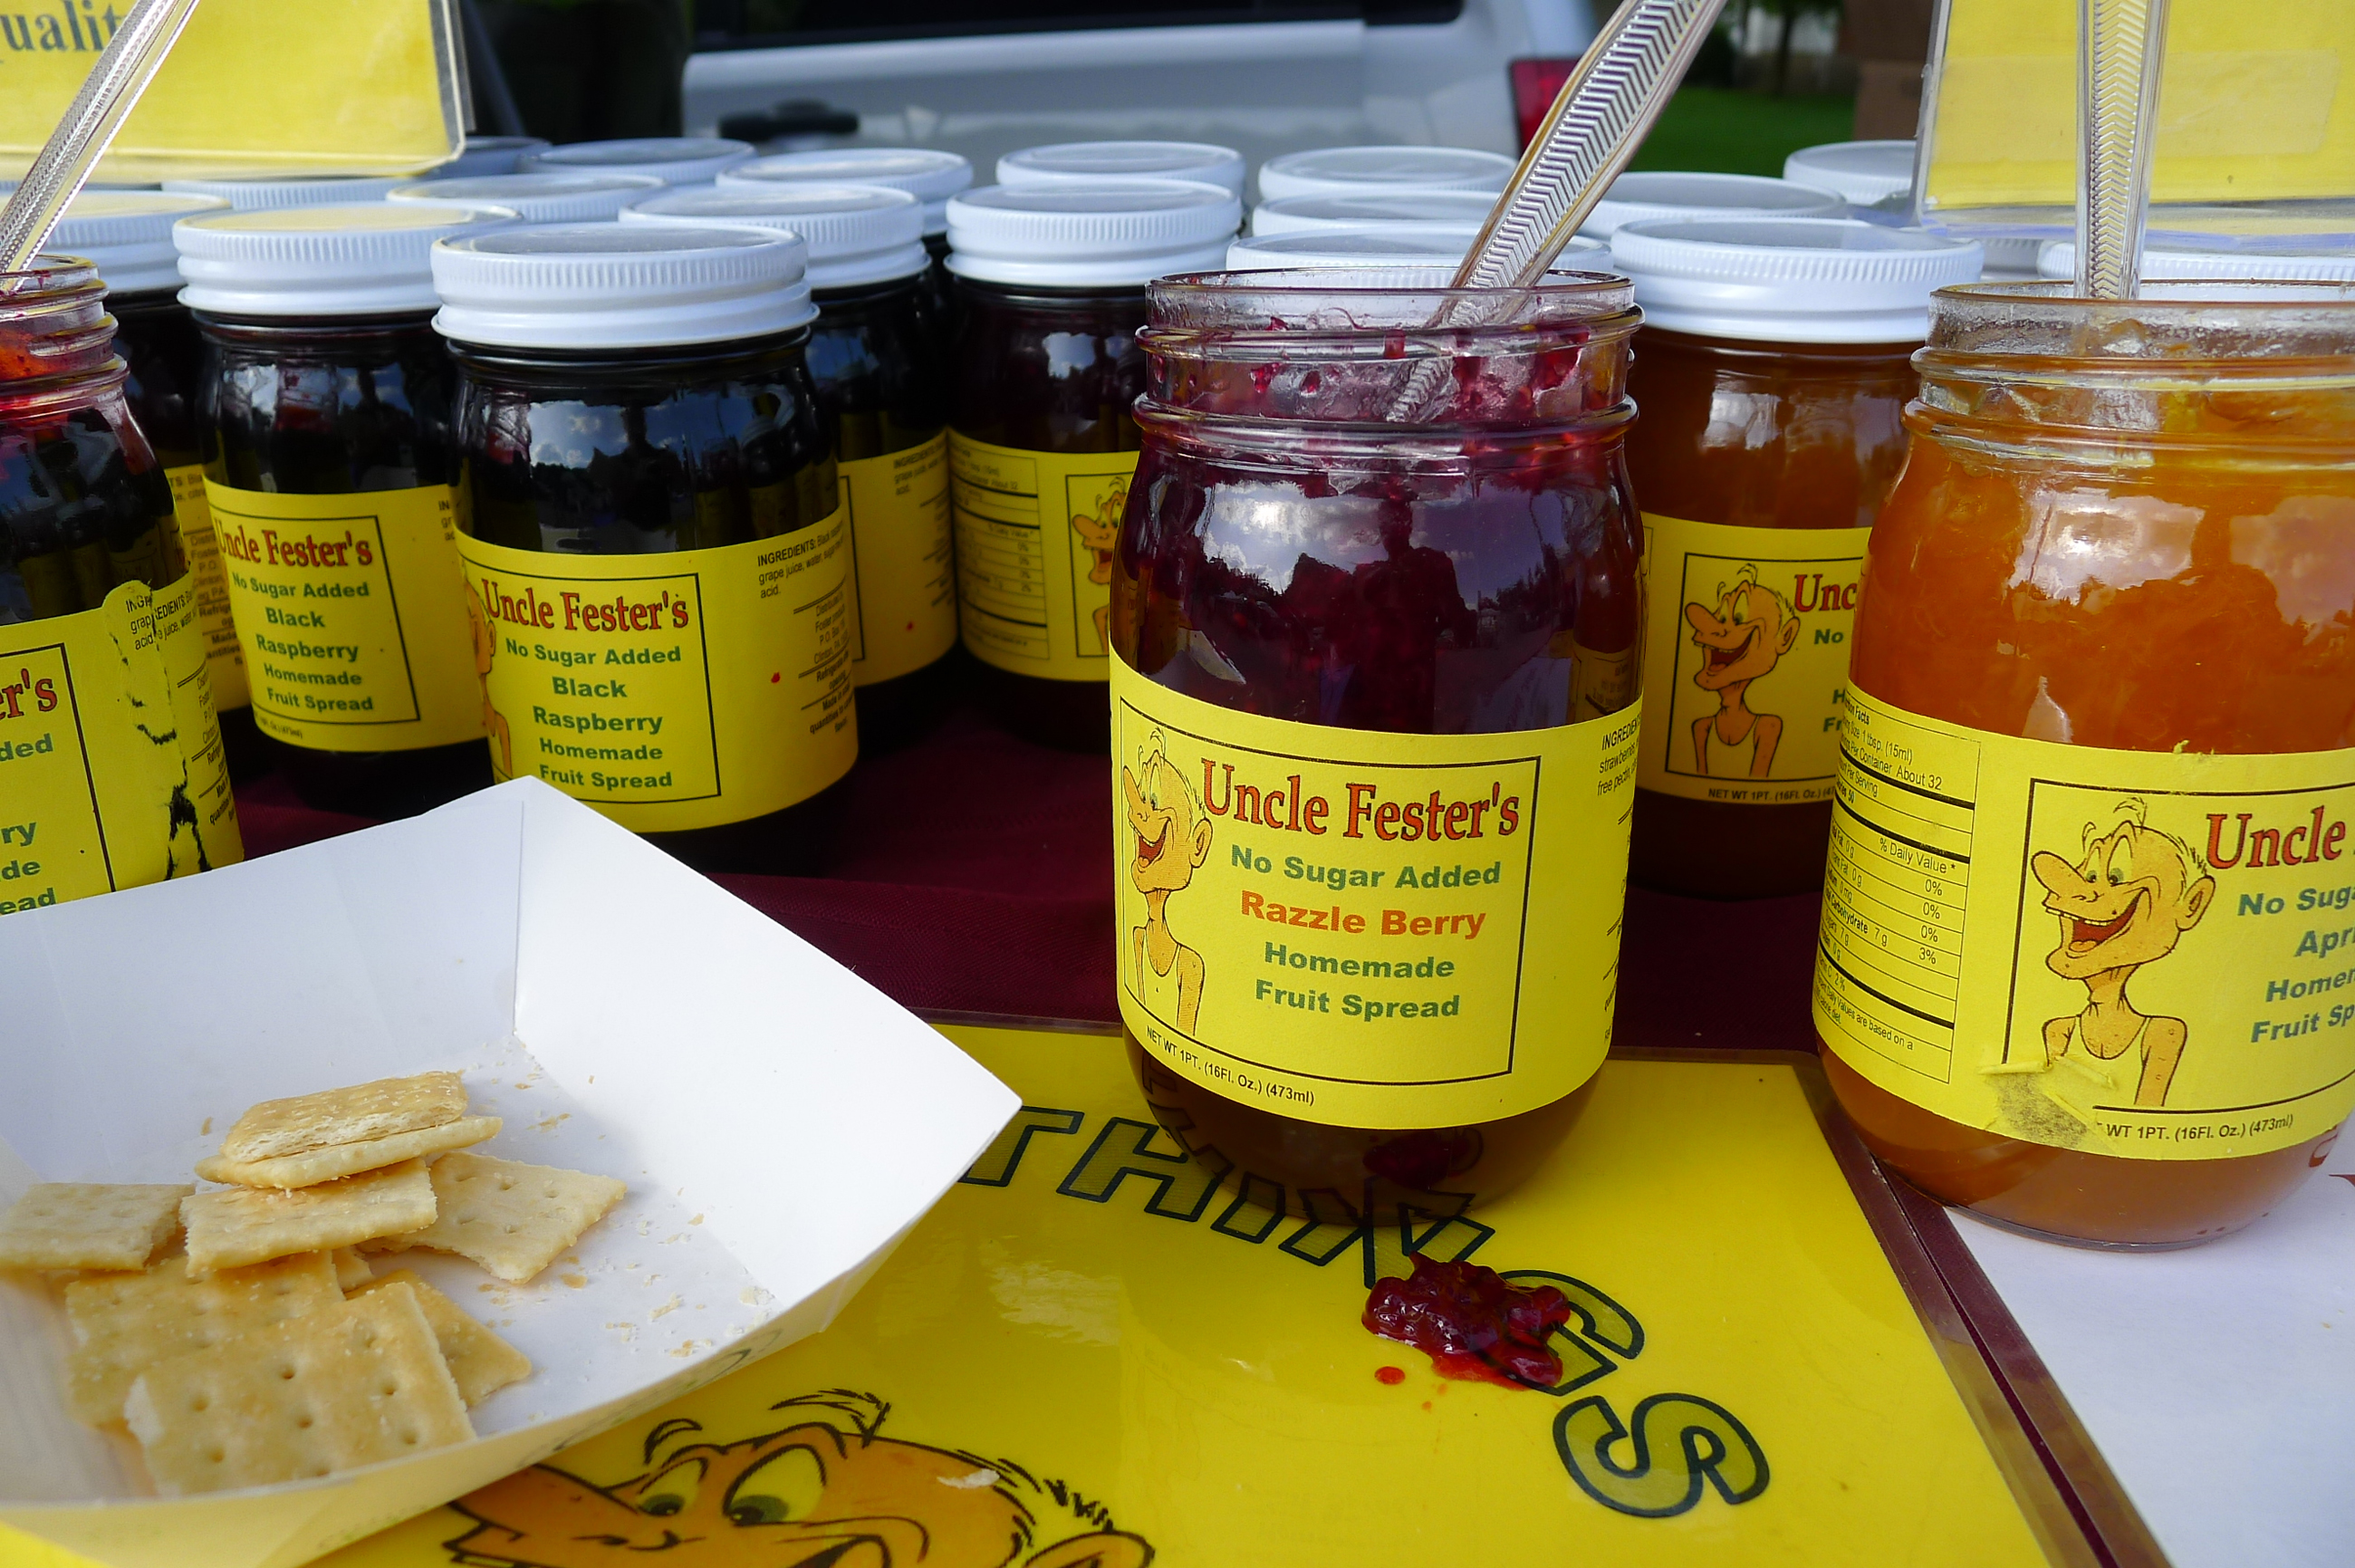 P1230882-22 At opening day at the Upper St. Clair Farmers Market on May 29, a big draw is the chance to sample products, such as Uncle Fester's jams and jellies.